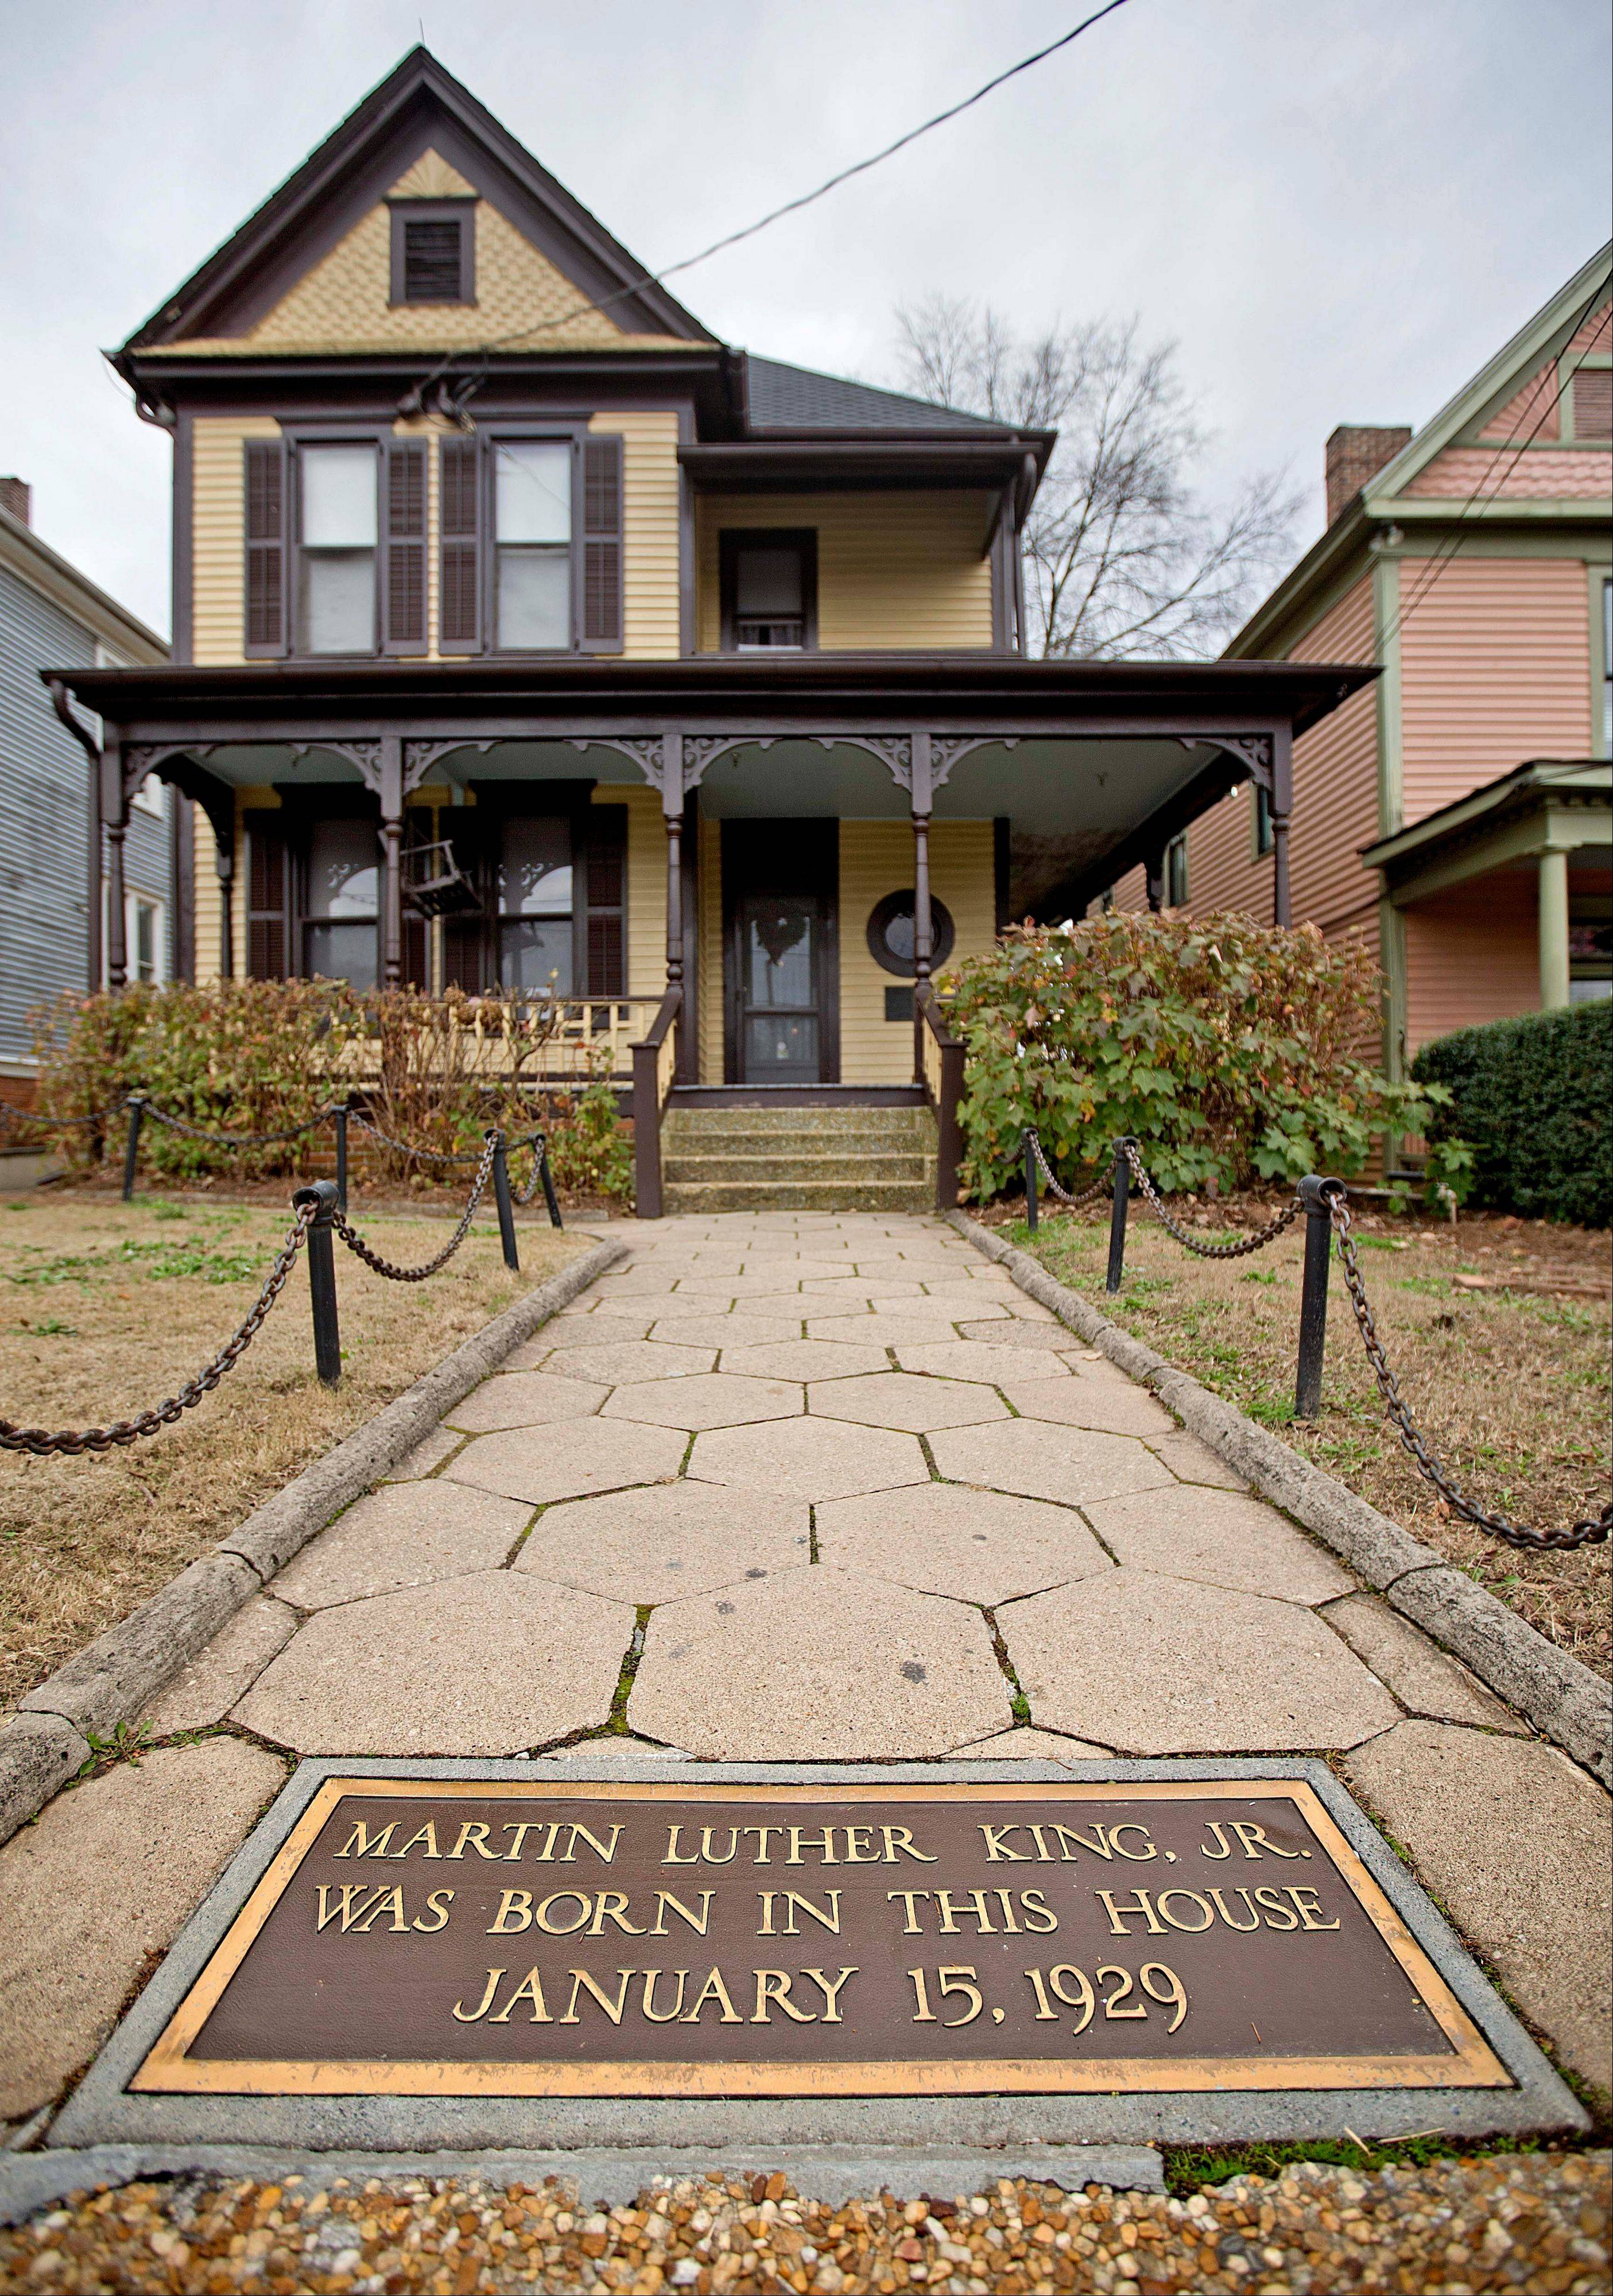 The Martin Luther King Jr. Historic Site, operated by the National Park Service, offers free tours of King's birth home in the Sweet Auburn historic district in Atlanta.